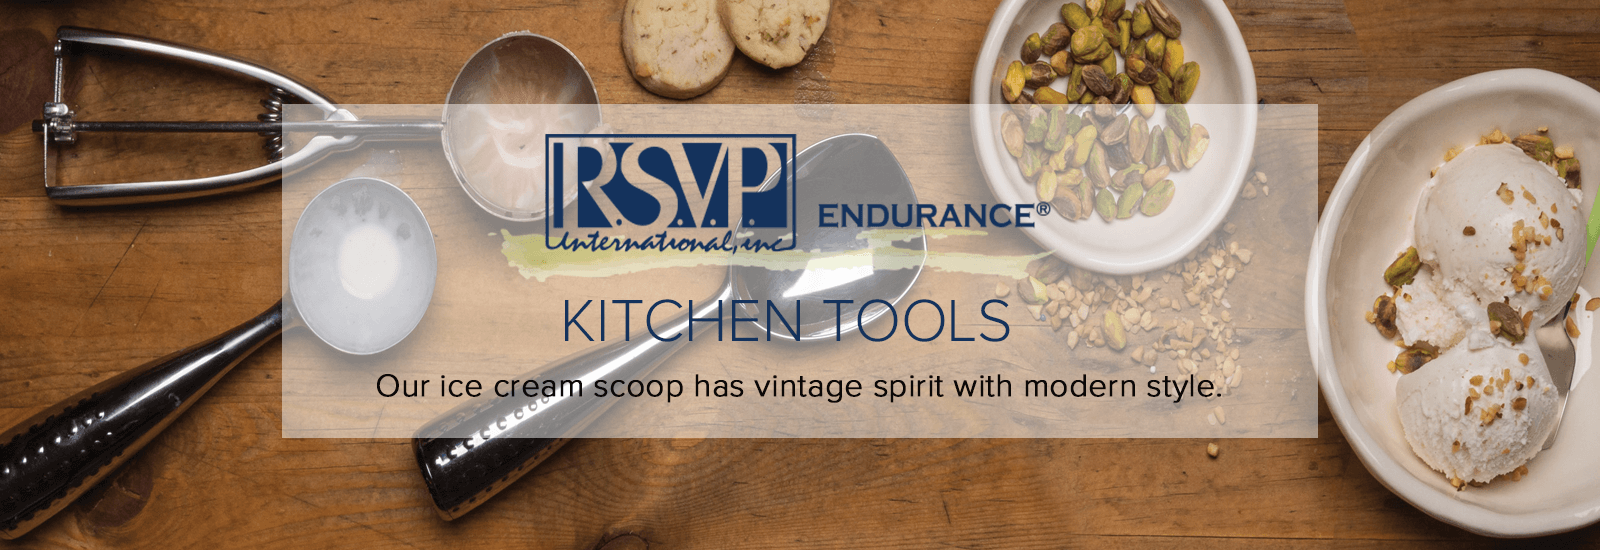 RSVP kitchen tools